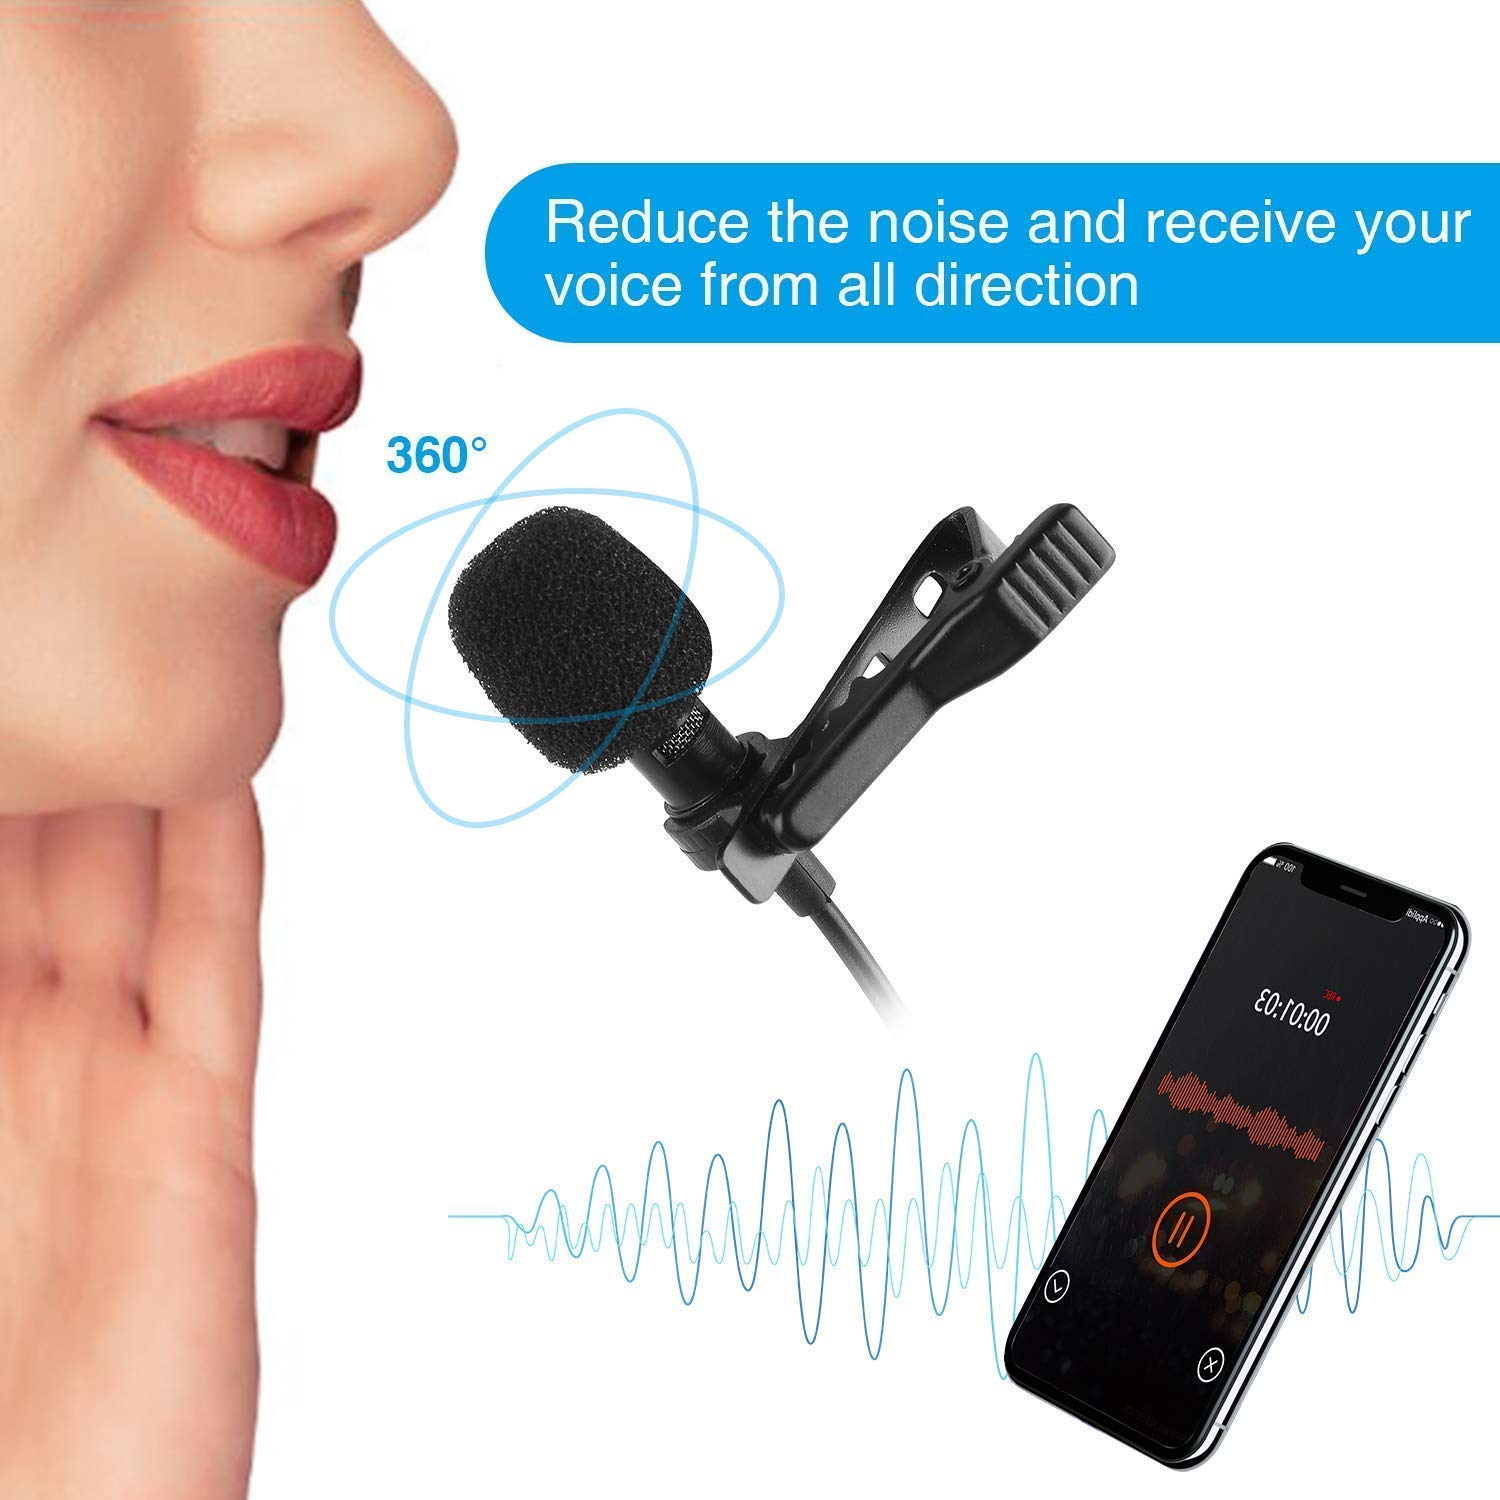 3.5mm Clip Microphone For Youtube, Collar Mike For Voice Recording, Lapel mike special for mobile only